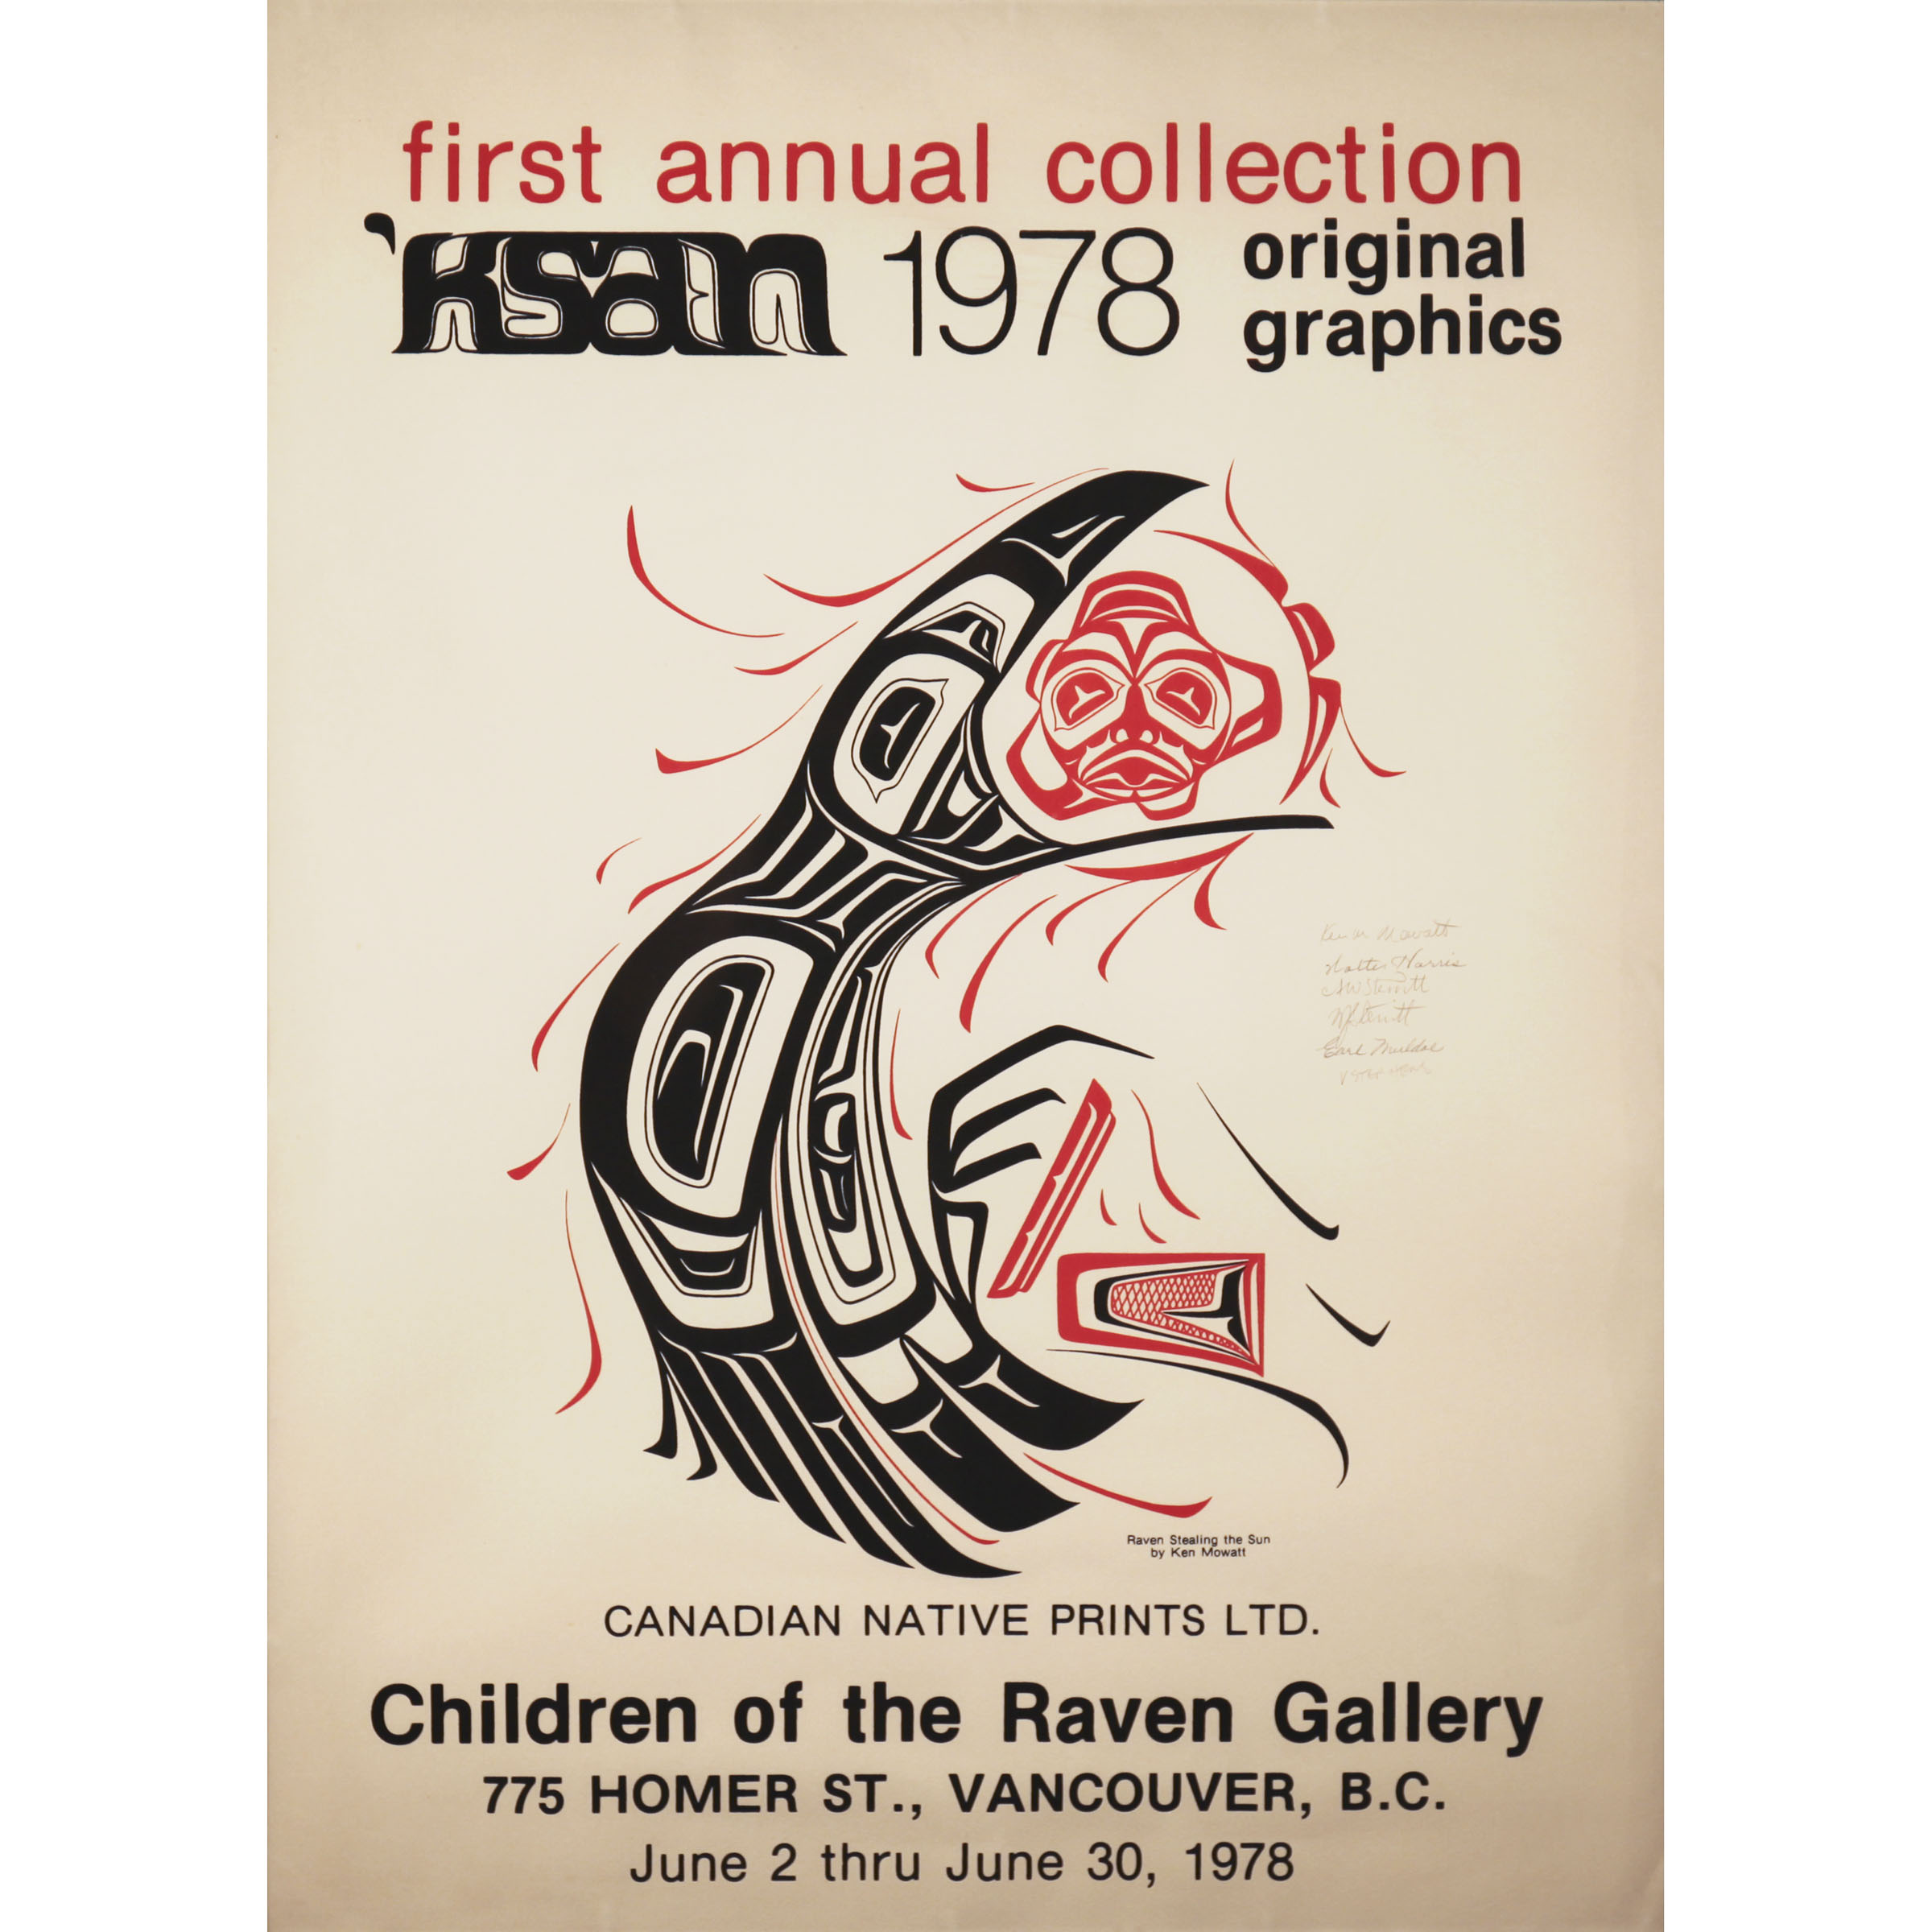 Children of the Raven Gallery Prints Collection Poster, 1978